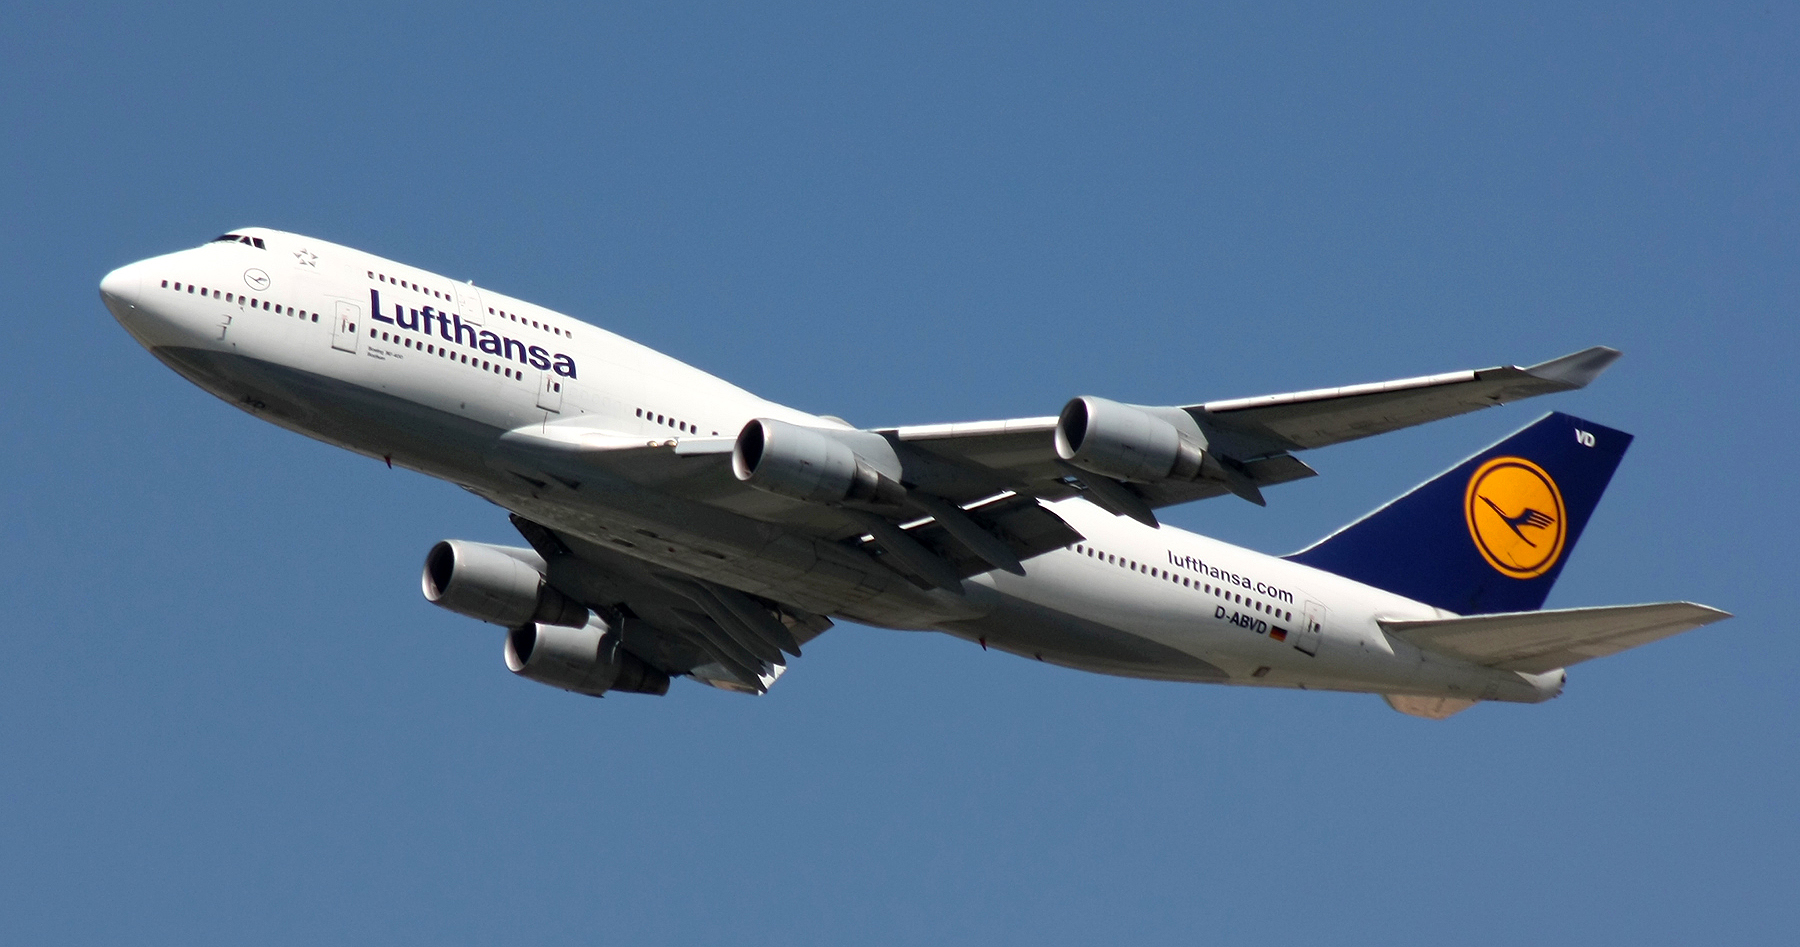 lufthansa 7 Put your trust in the professionals at lufthansa cargo, we fly your freight to destinations all over the world get information online now.